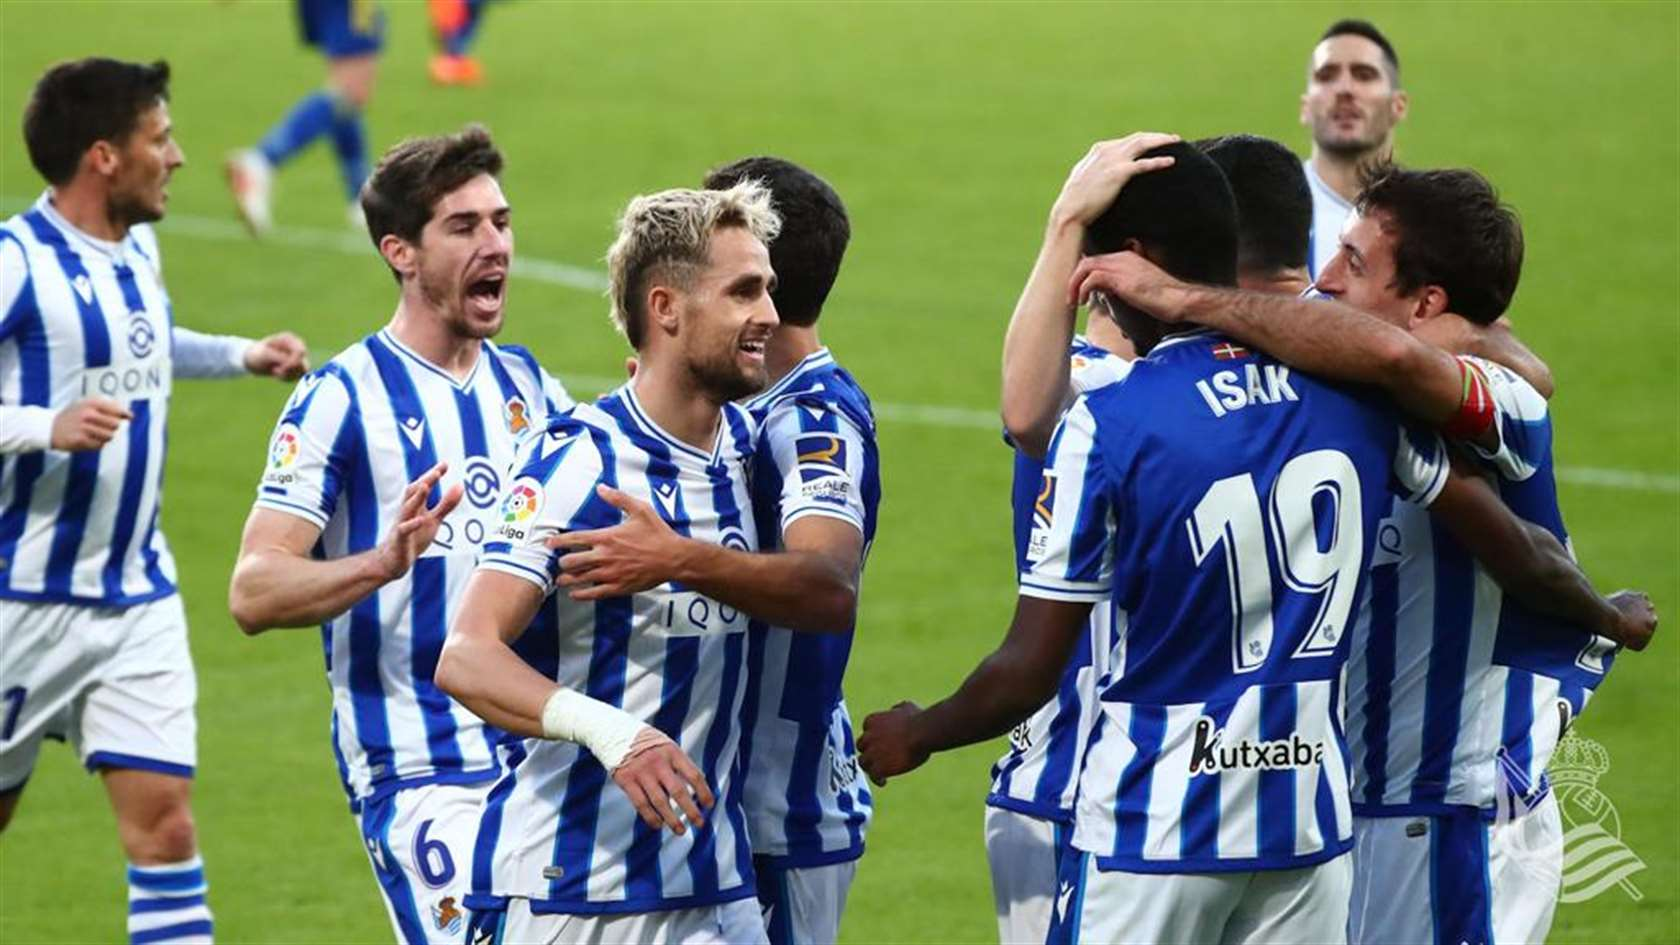 Real Sociedad are enjoying a rich vein of form and top the standings at this early stage